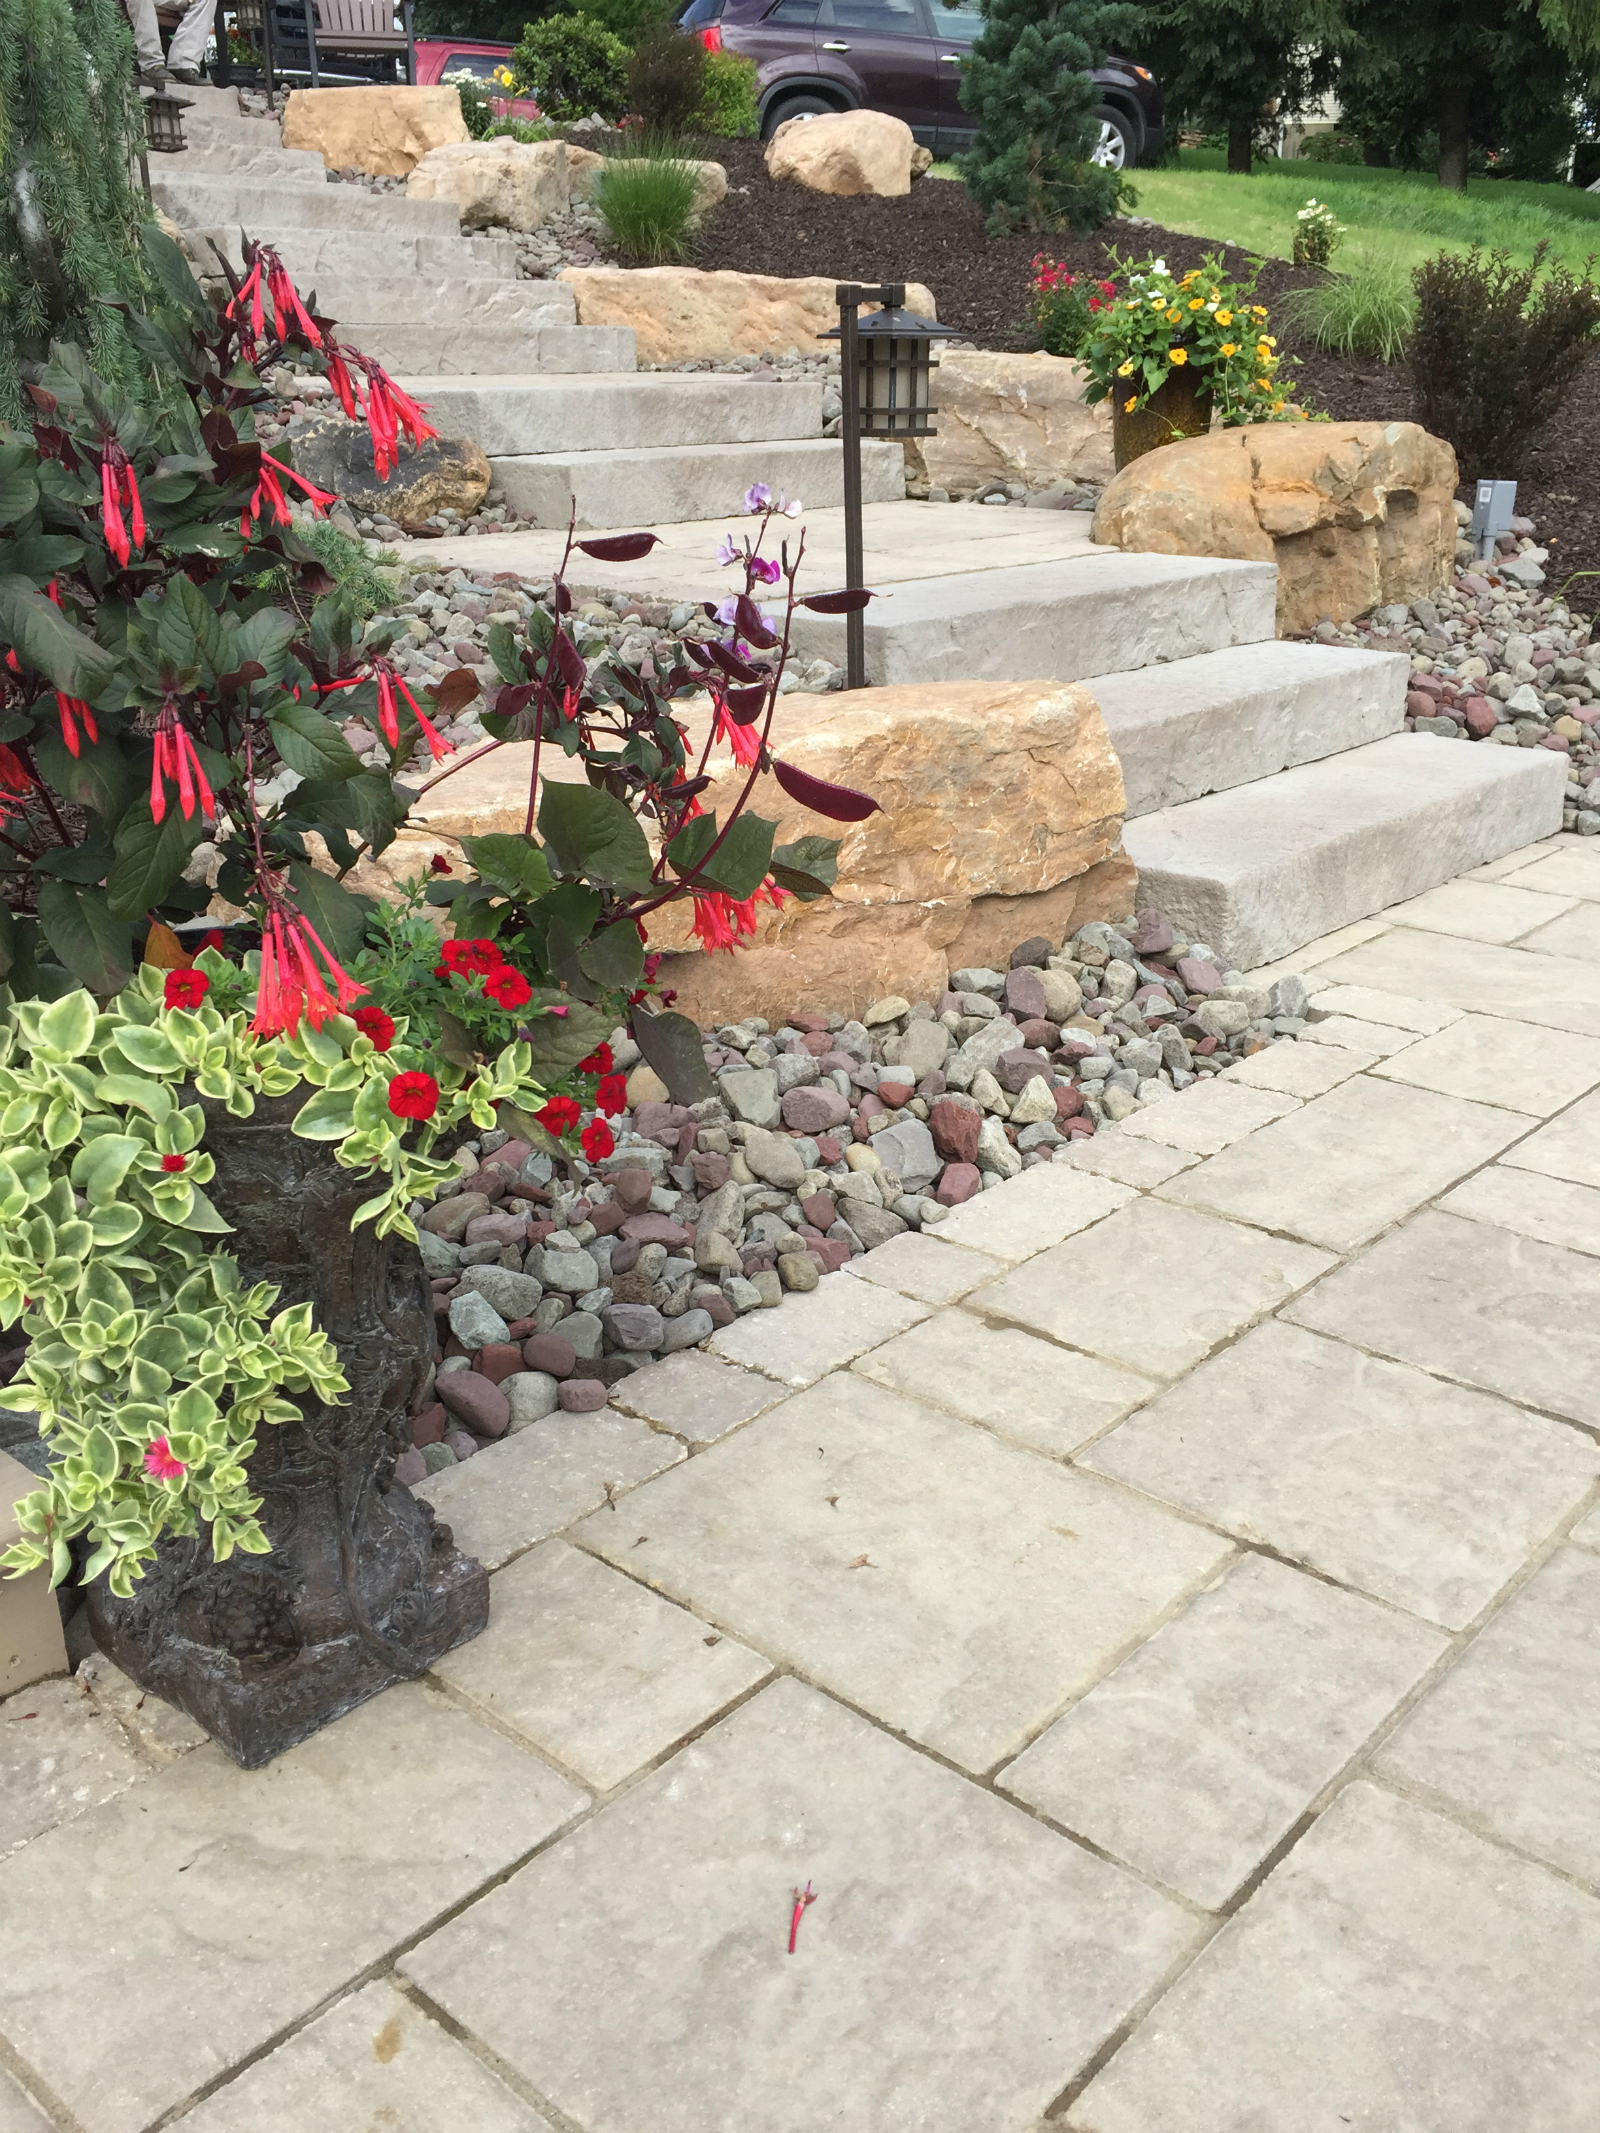 Why Do PA Homeowners Love Permeable Pavers?